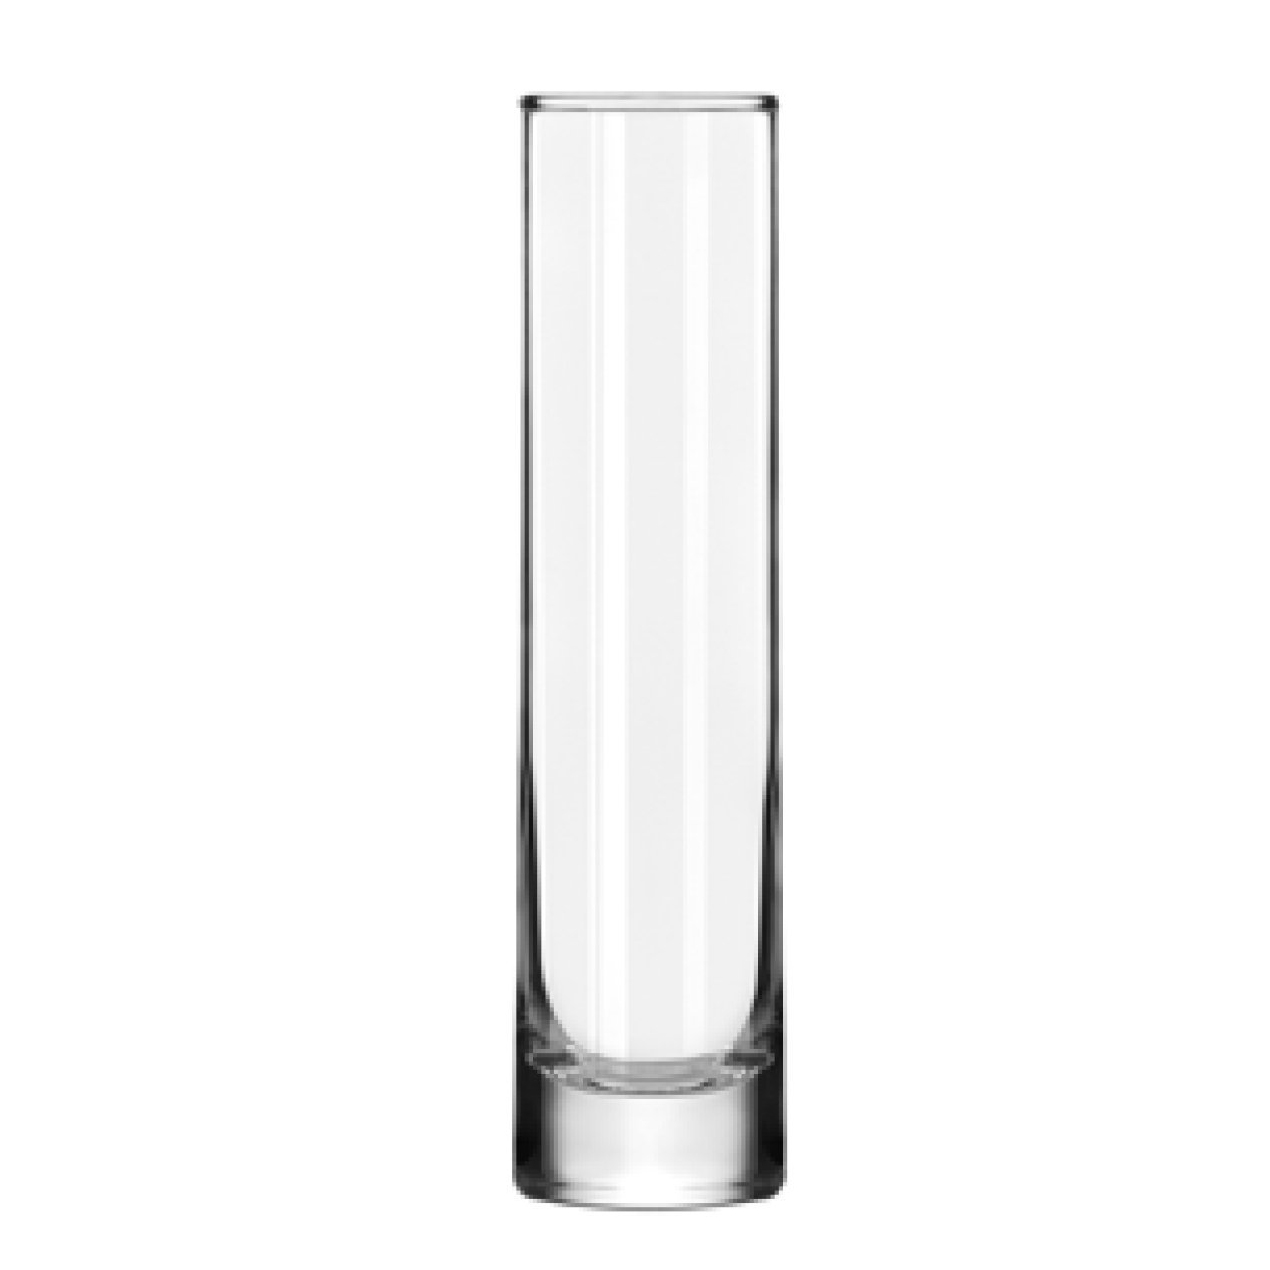 Charming Cylinder Glass Vases To Decor The Room Decor On The Line